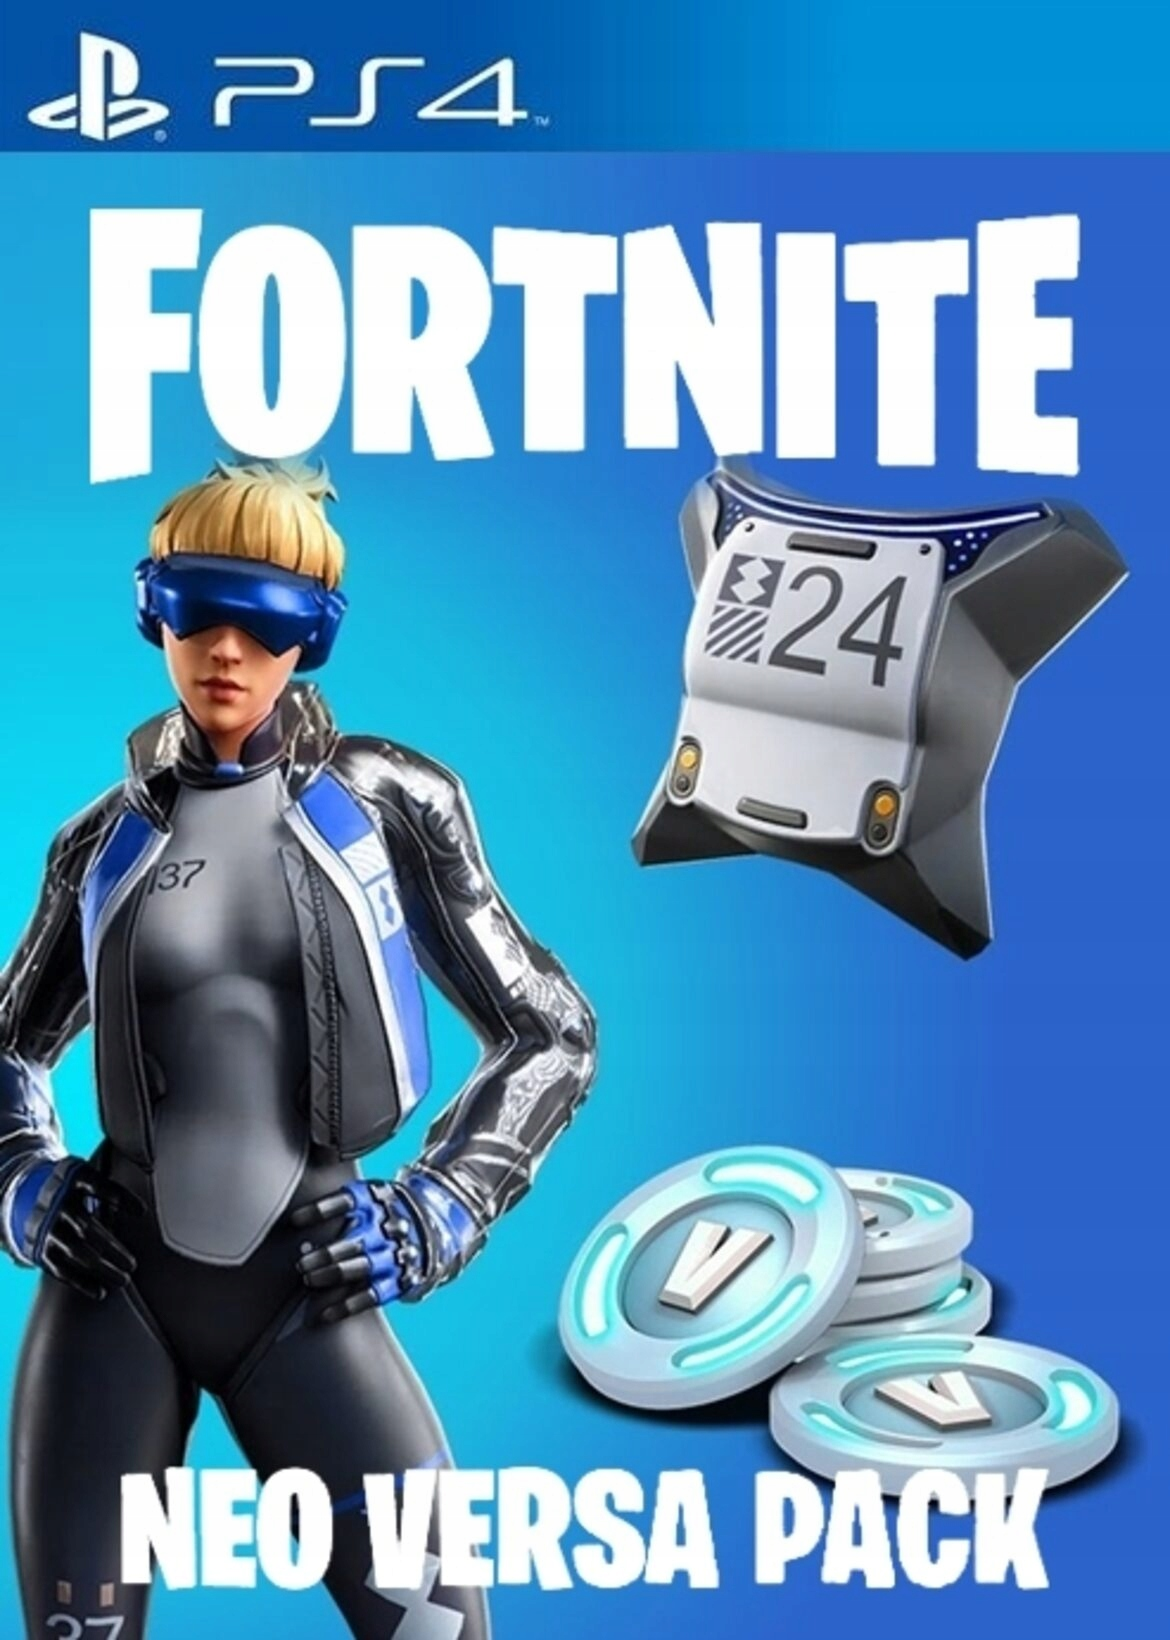 🔥 FORTNITE 🔥 ⭐ NEO VERSA BUNDLE ⭐ 500 V-BUCKS PS4 EU